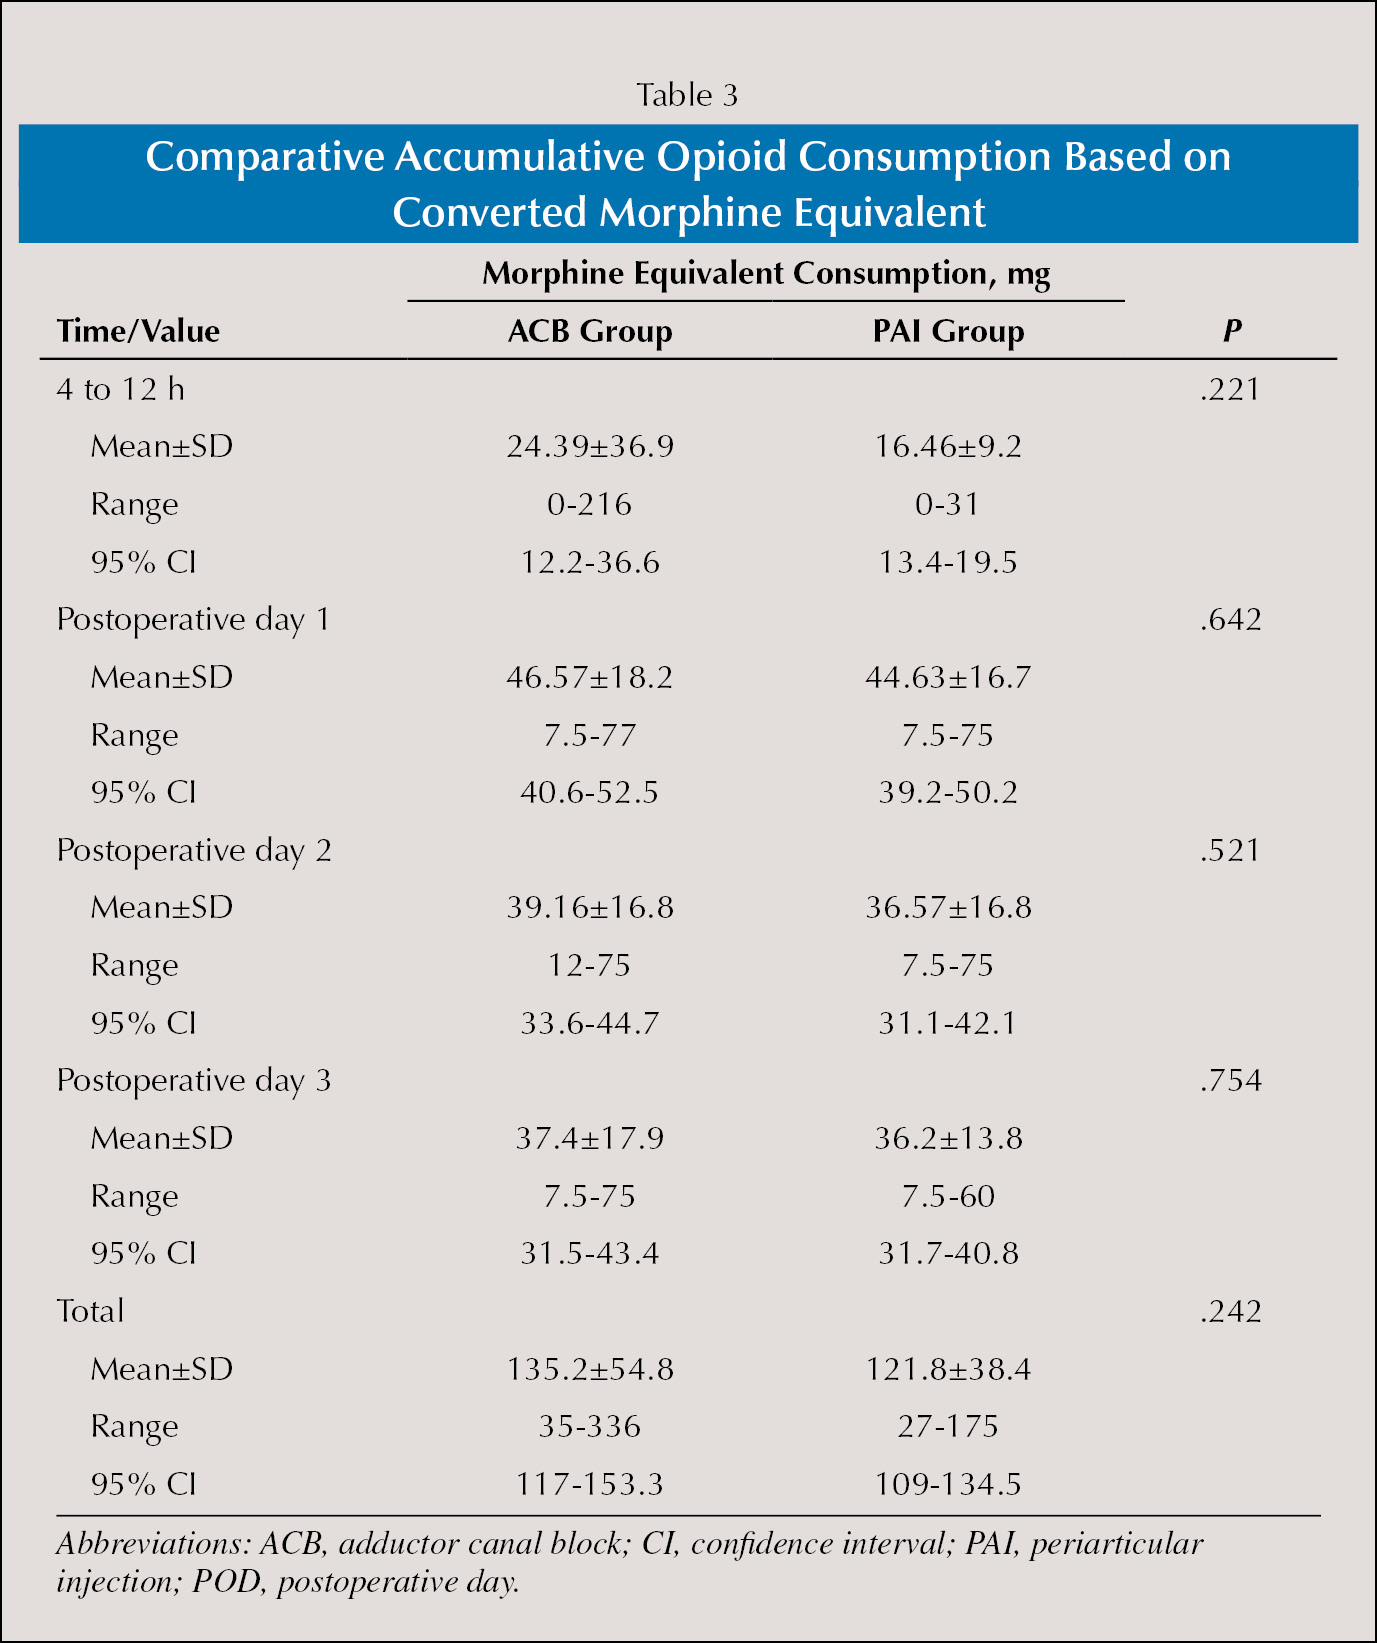 Comparative Accumulative Opioid Consumption Based on Converted Morphine Equivalent